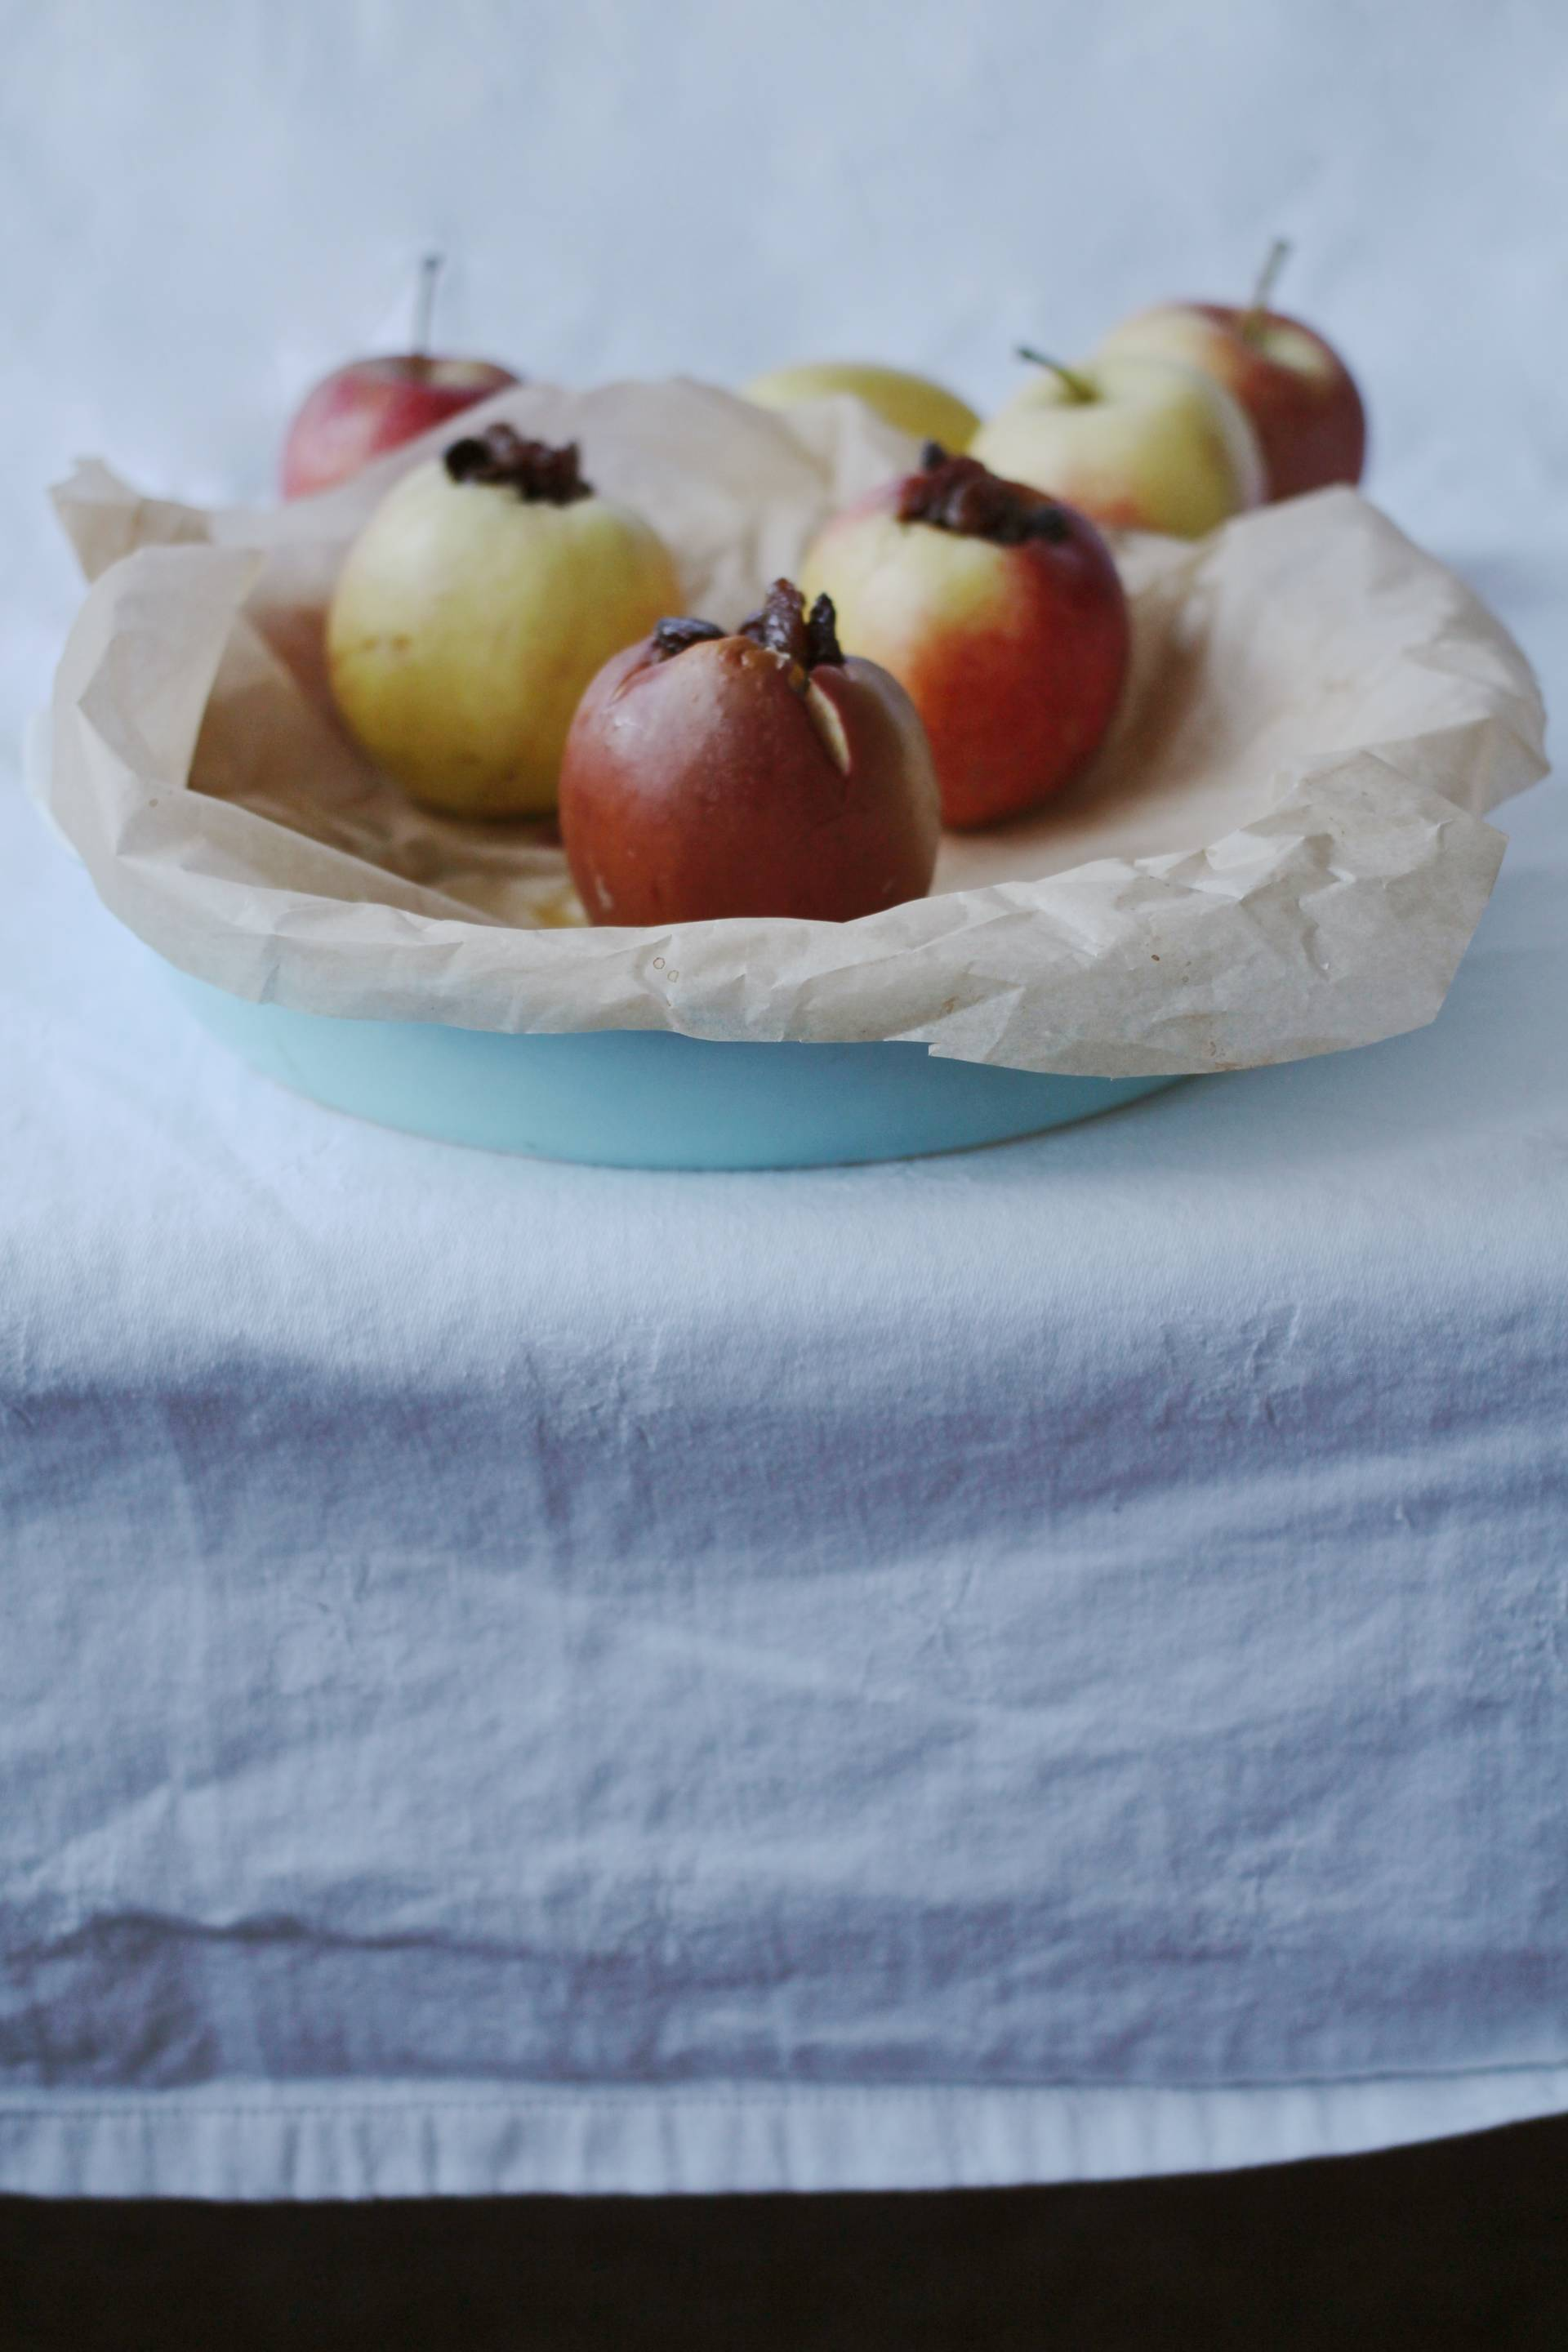 Baked apples stuffed with rasins